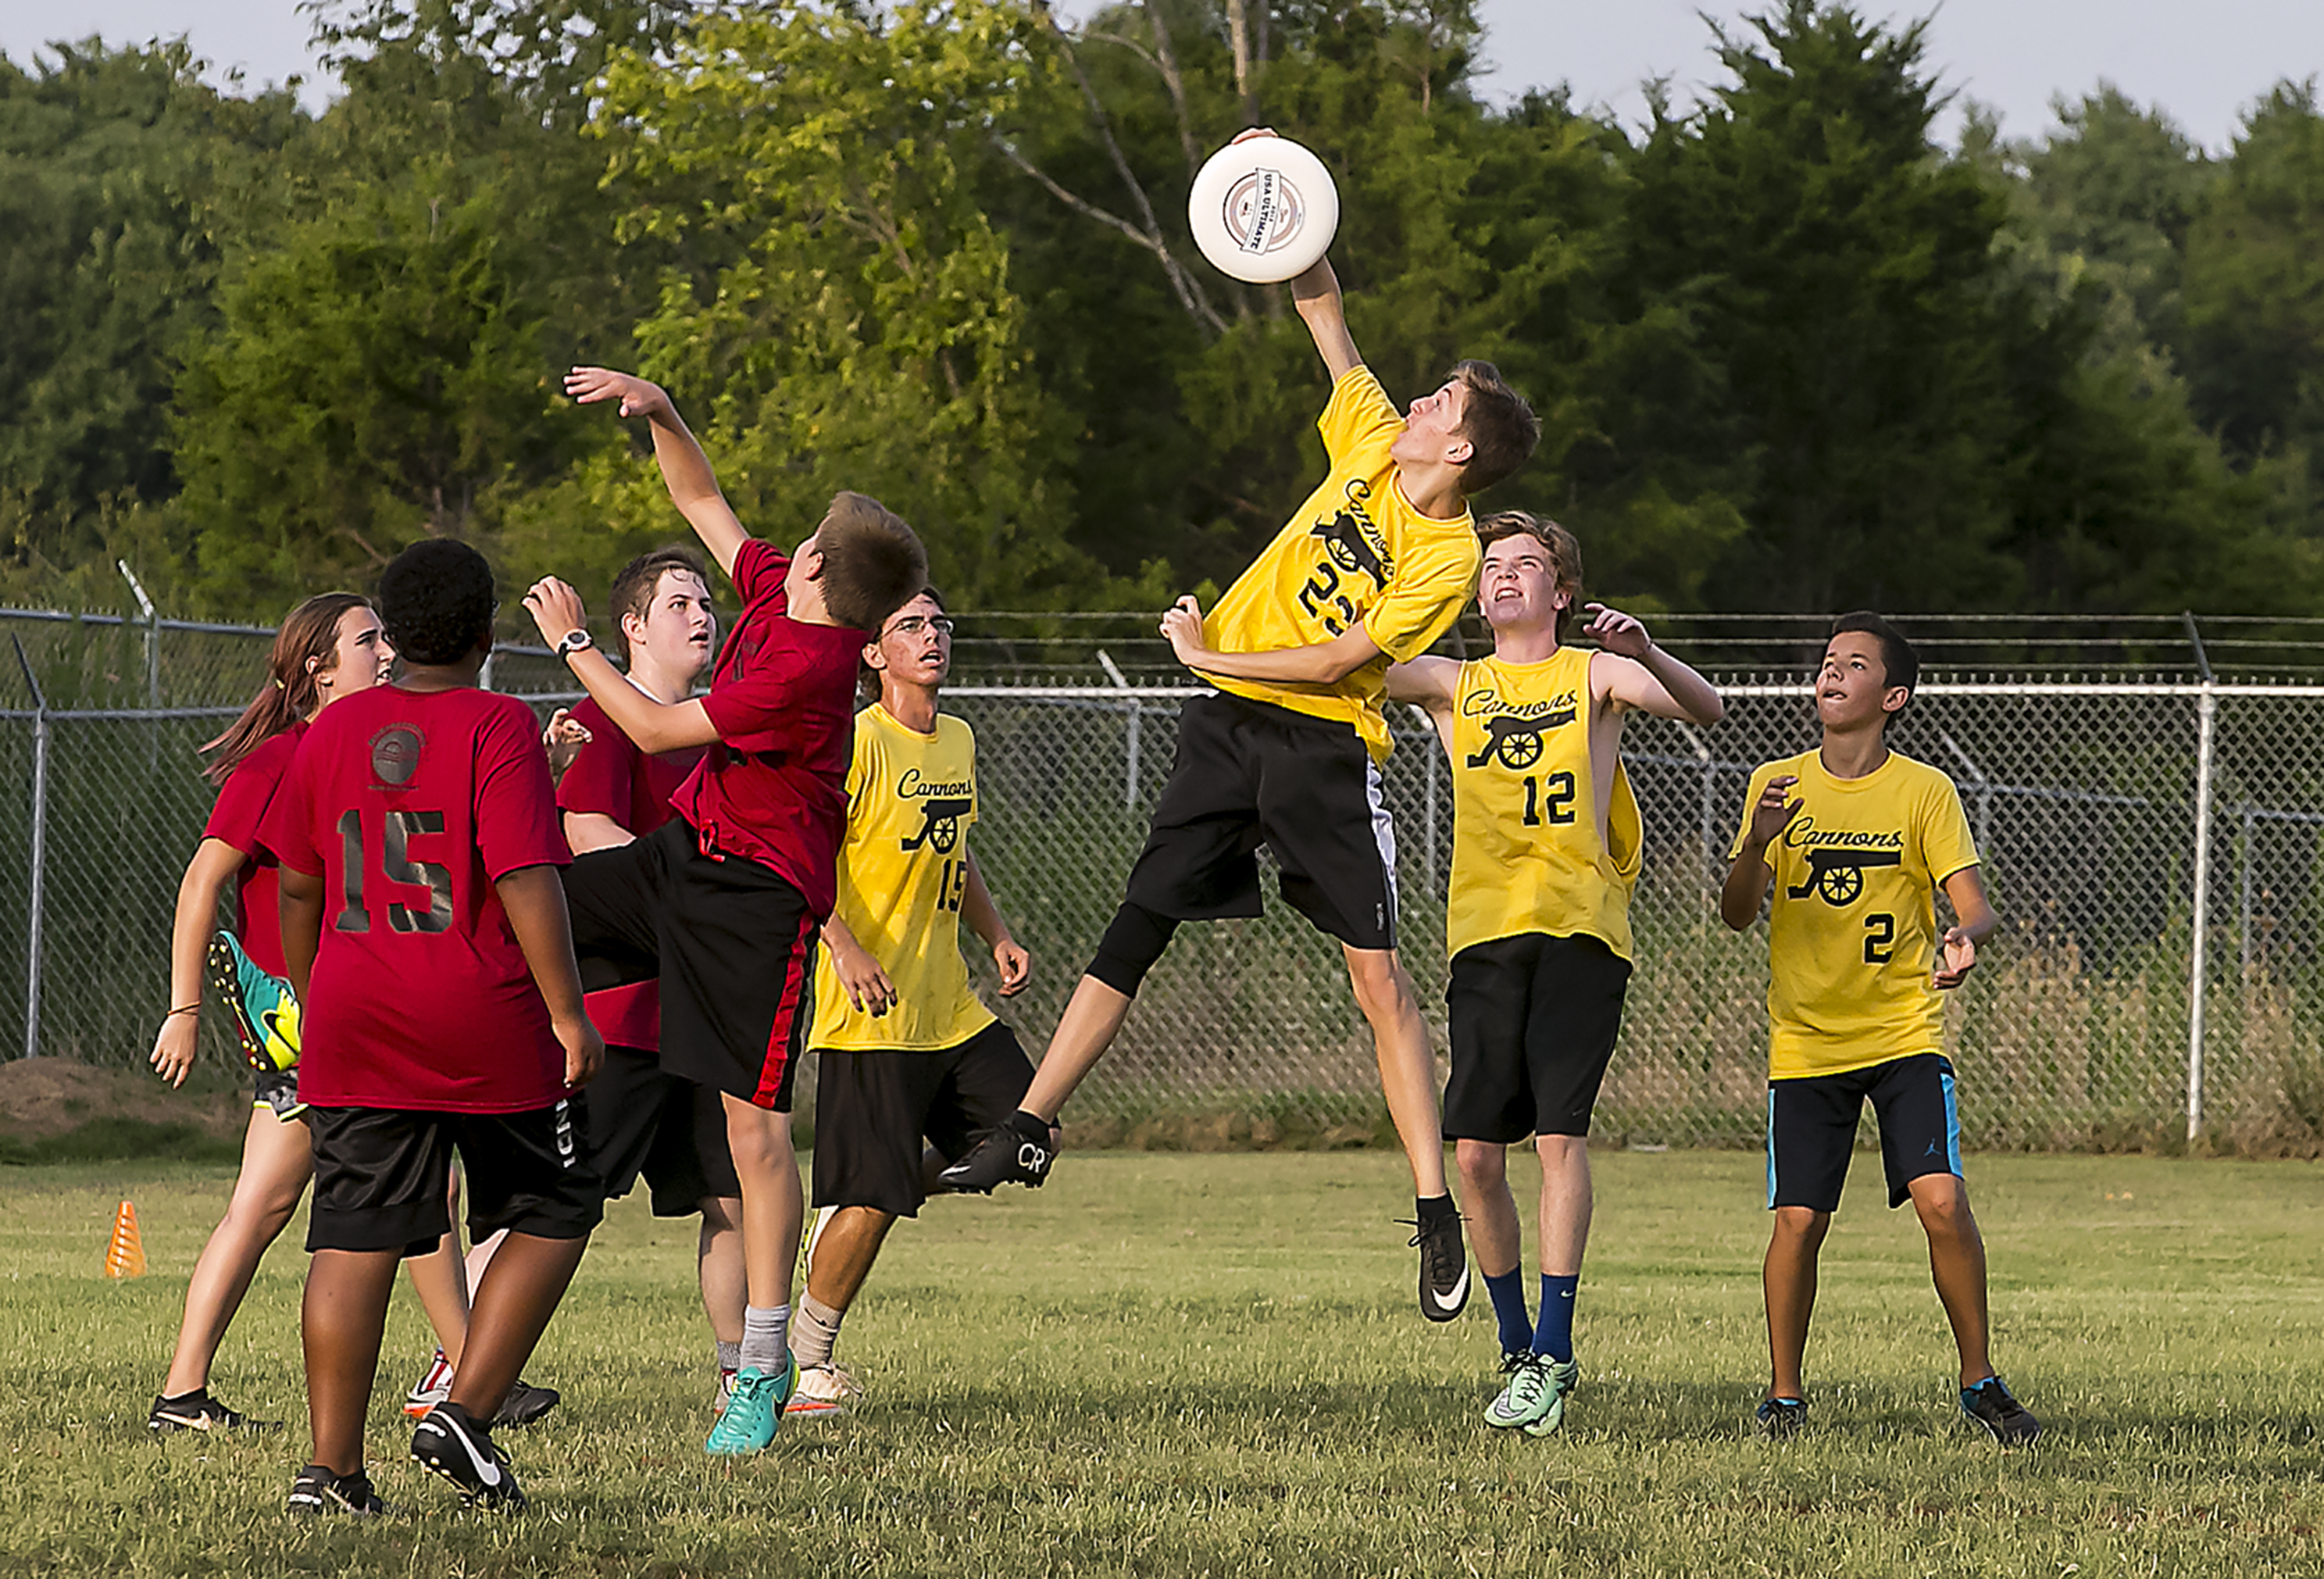 Did You Know There Is An Ultimate Frisbee League In